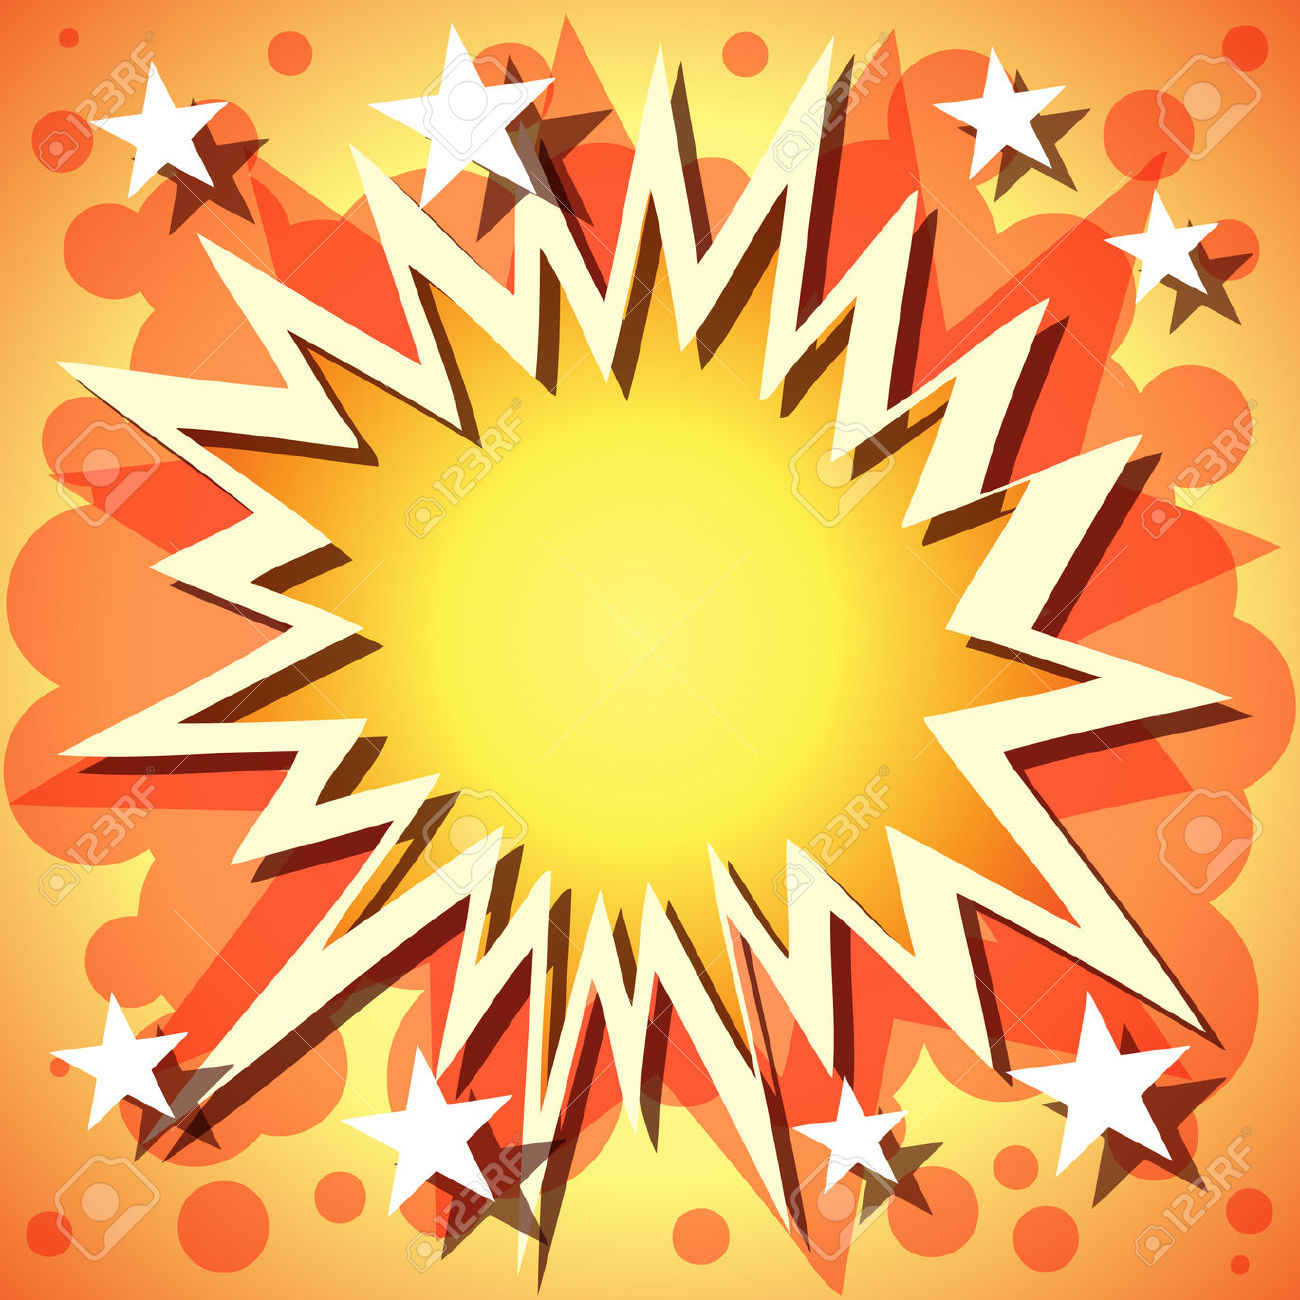 Clipart explosion star banner. Free cliparts download clip